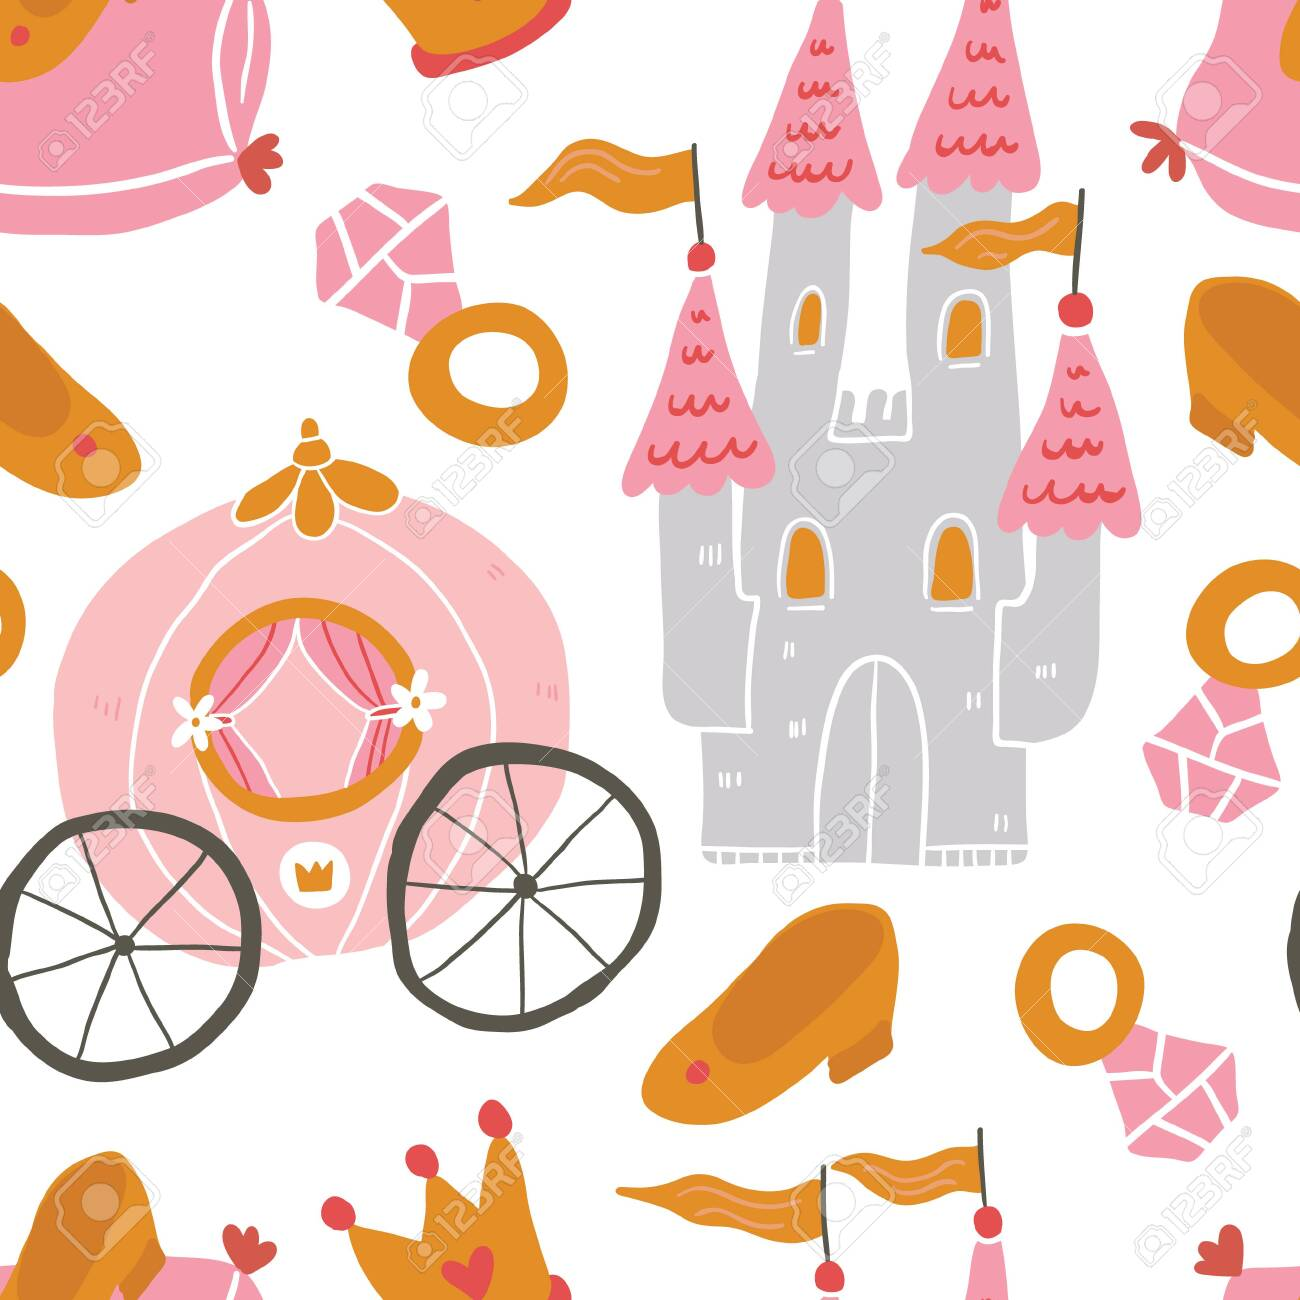 Hand Drawn Princess Seamless Pattern For Textile With Castle